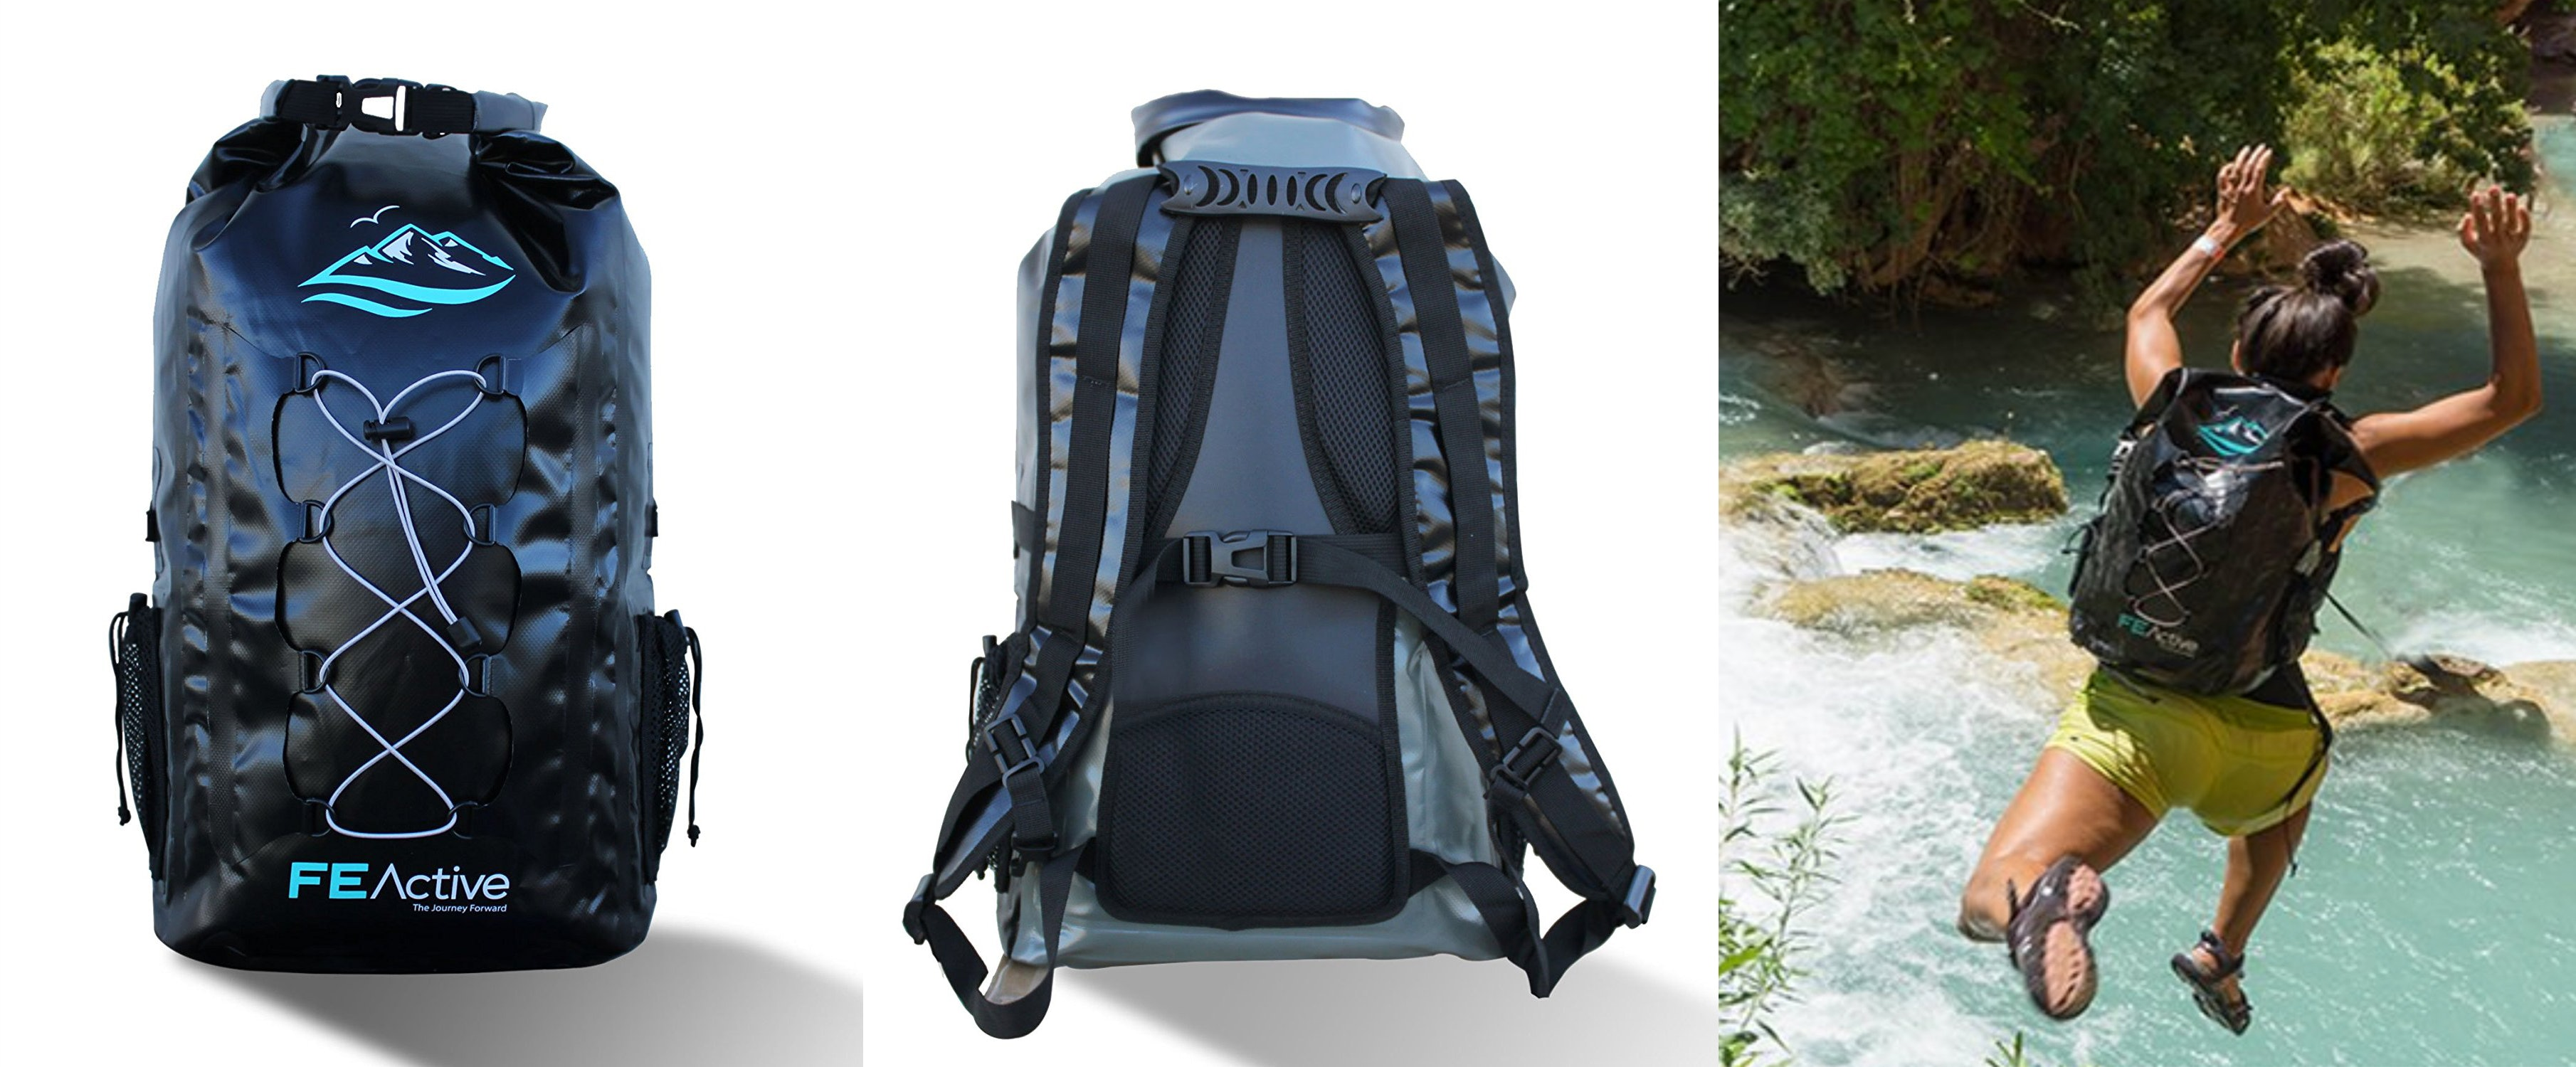 a0464044a459 The 4 Best Waterproof Backpacks